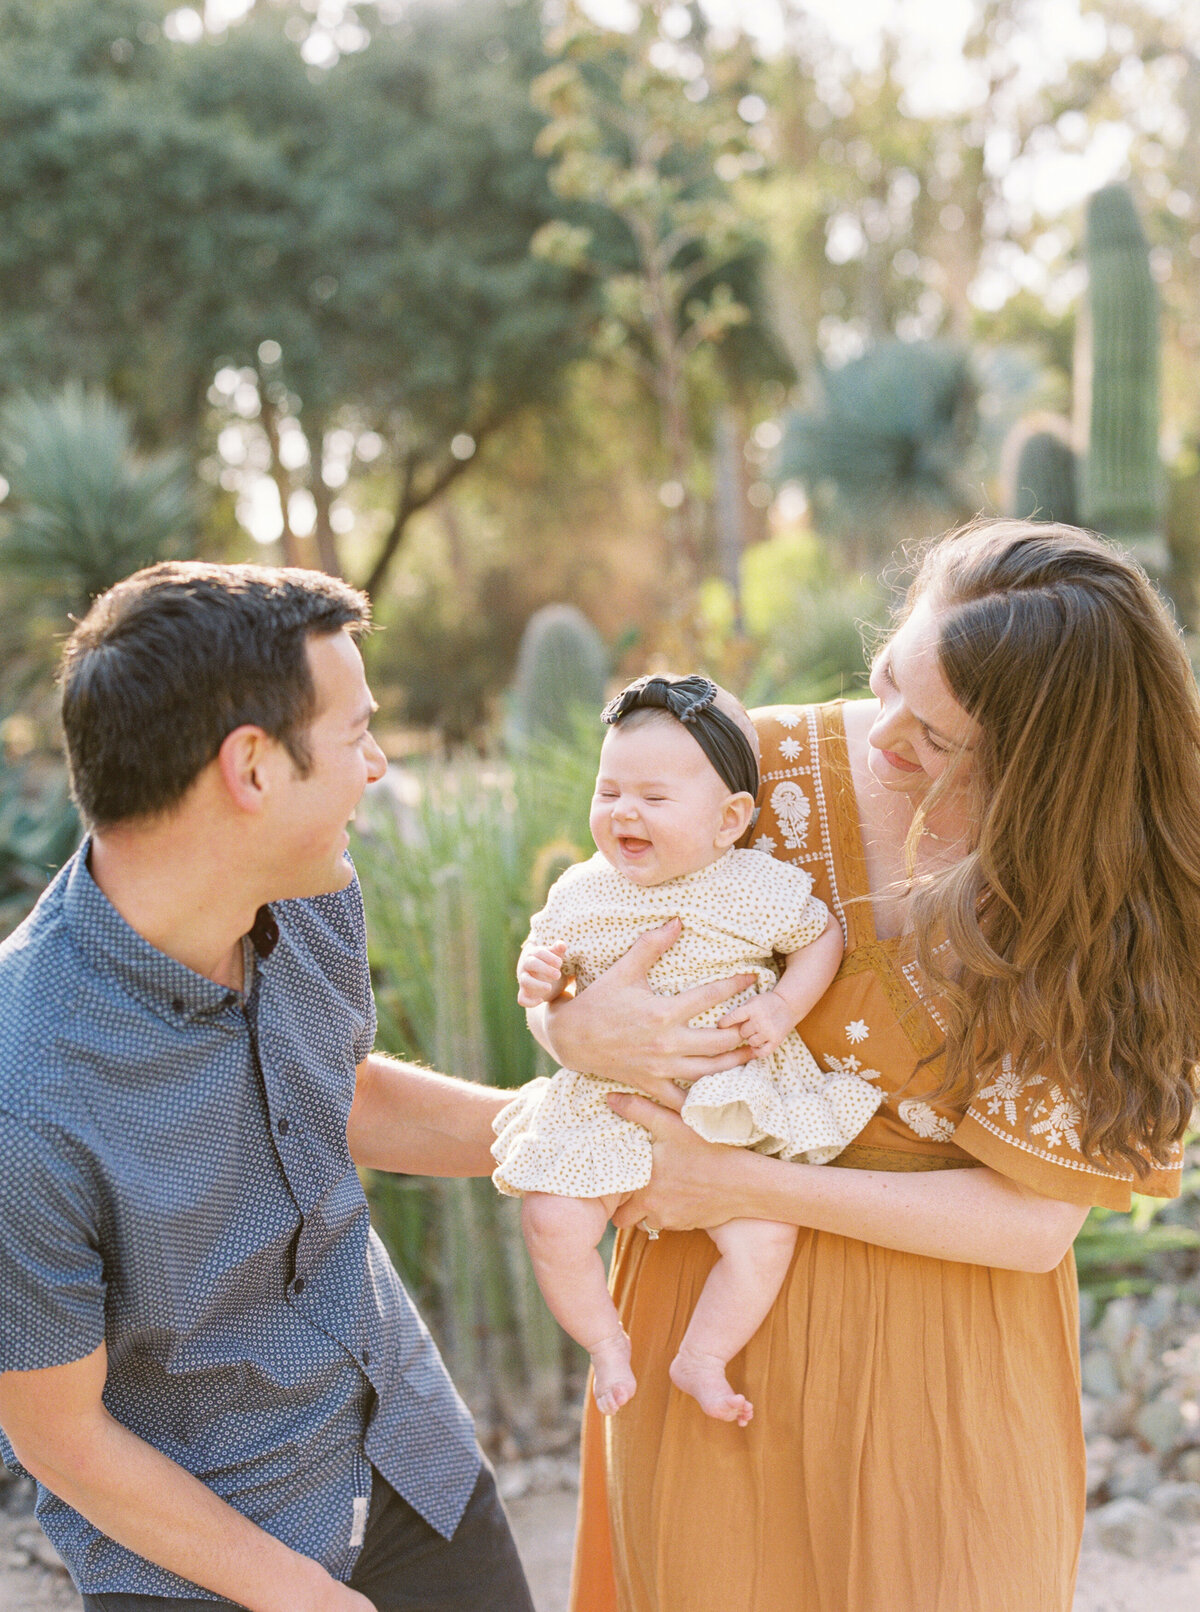 Olivia Marshall Photography- Cactus Desert Garden Family Photos-1